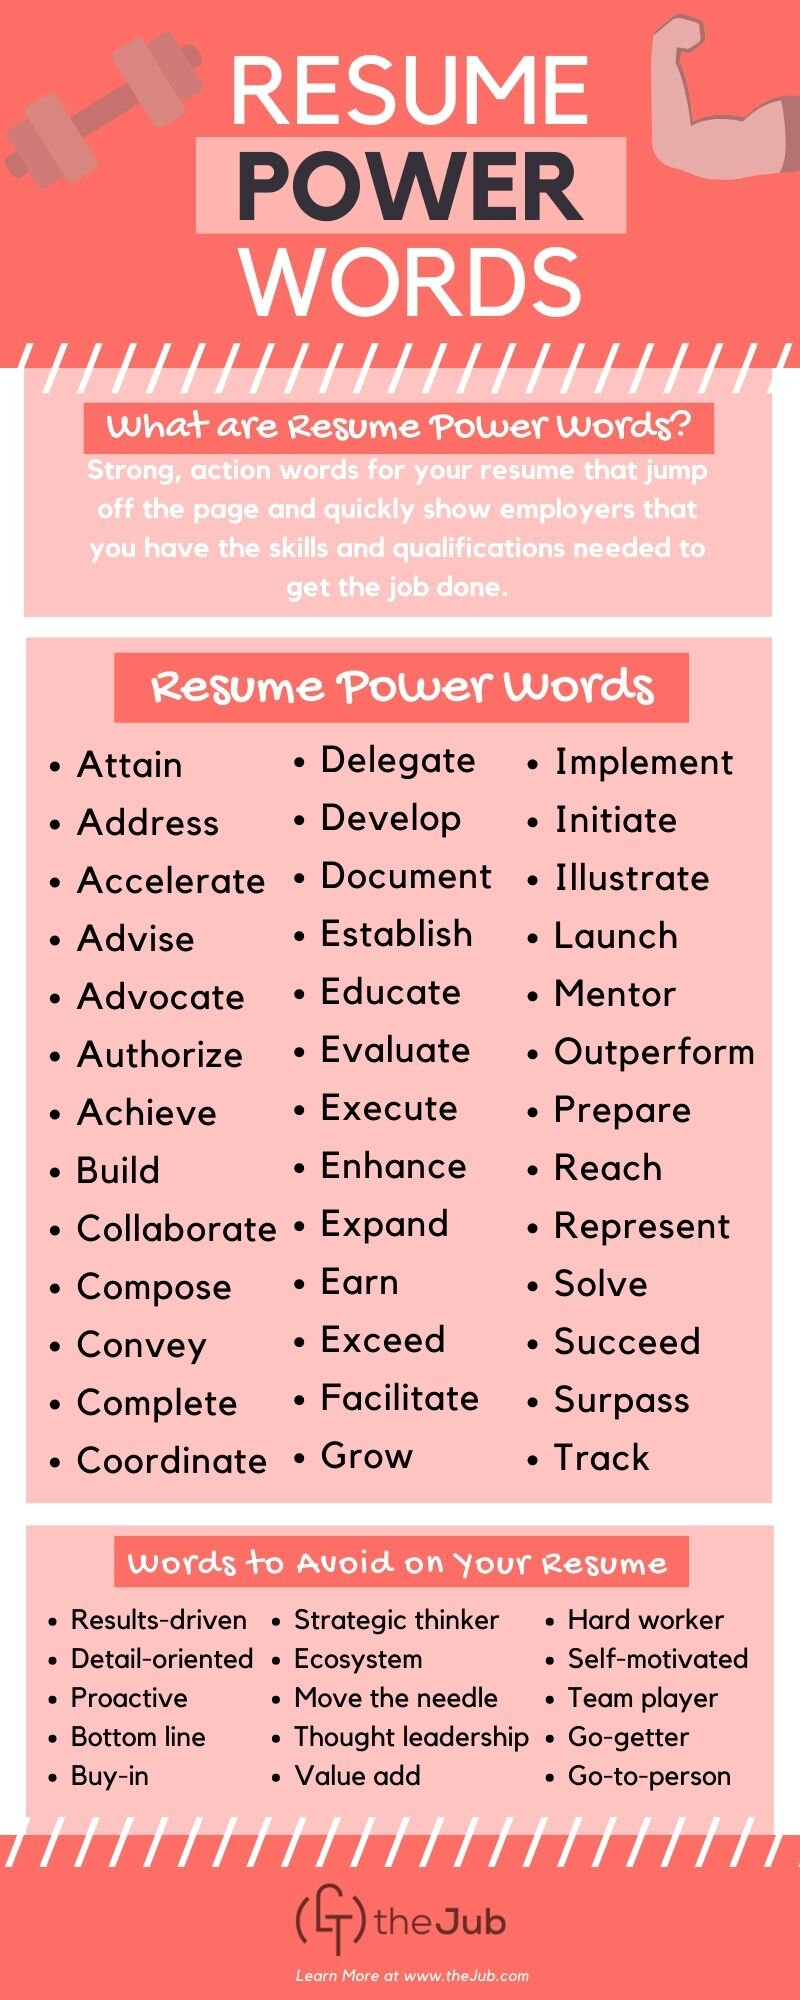 Resume Power Words For 2020 Infographic